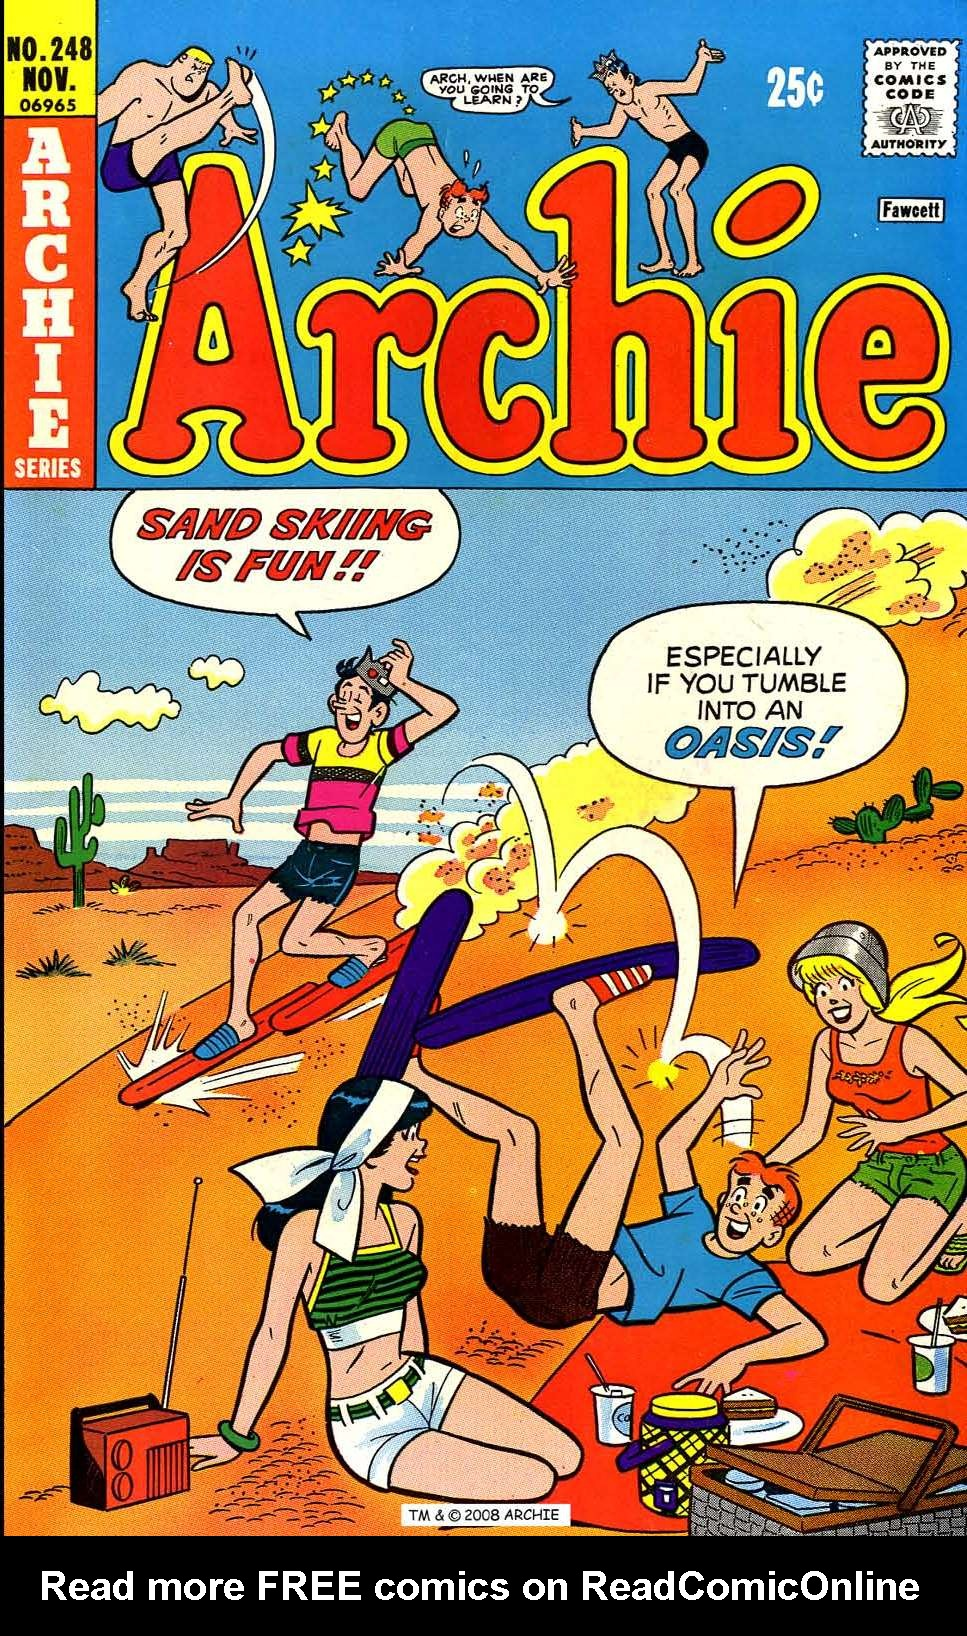 Read online Archie (1960) comic -  Issue #248 - 1